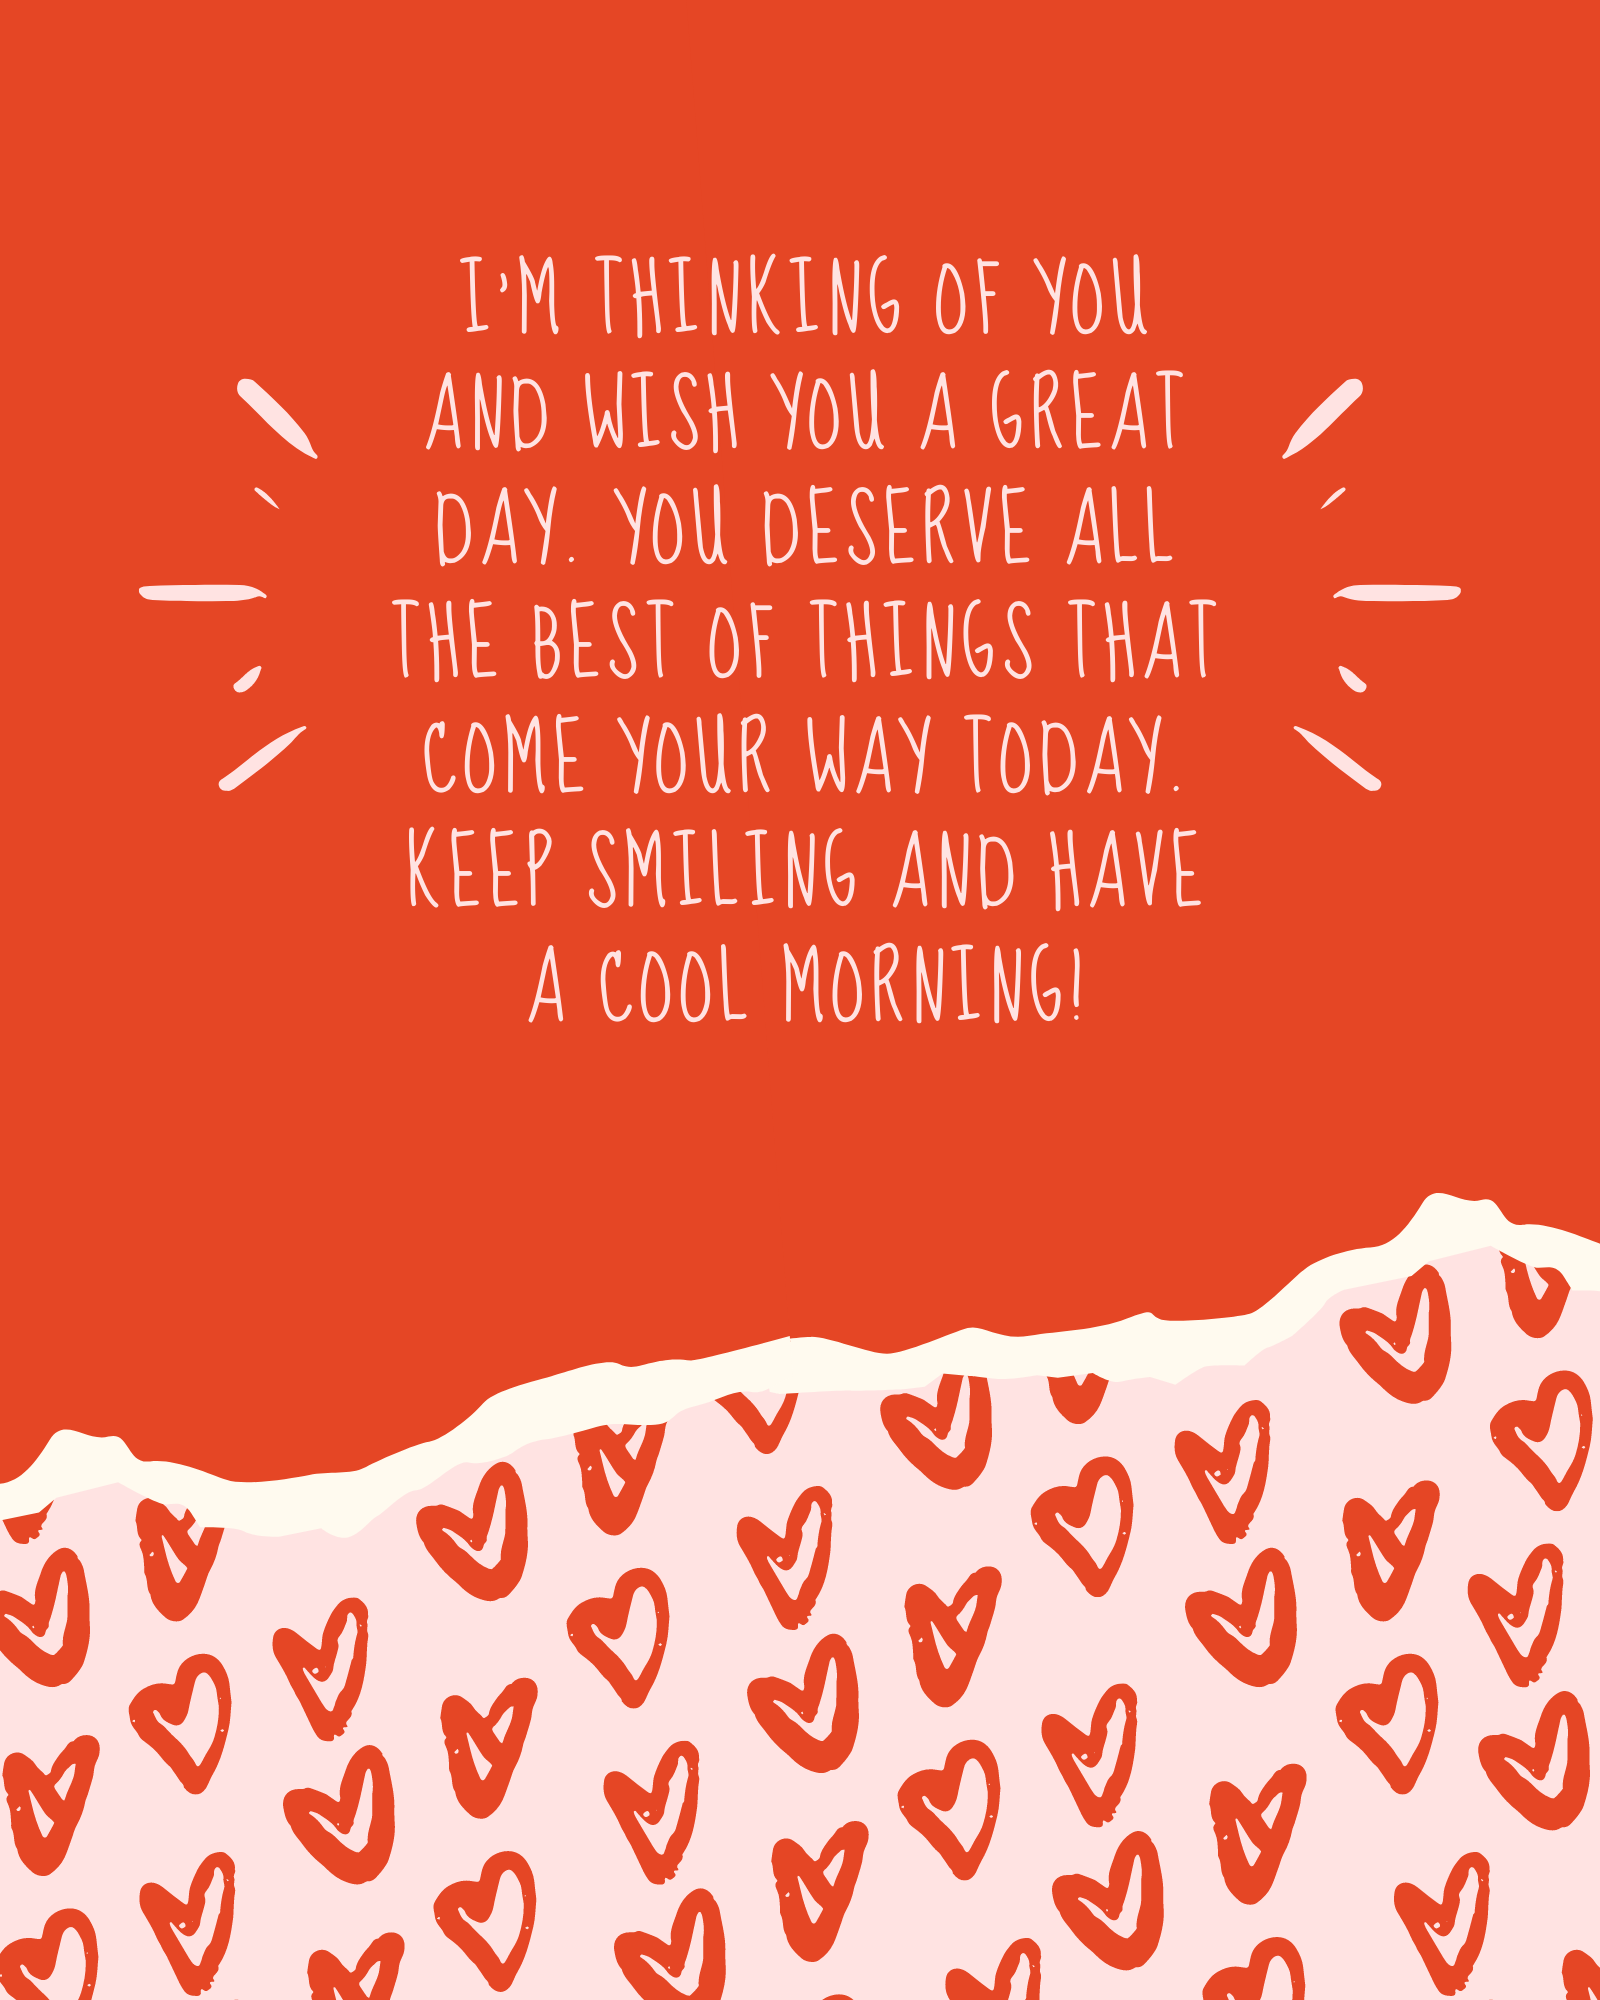 Good morning messages for crush